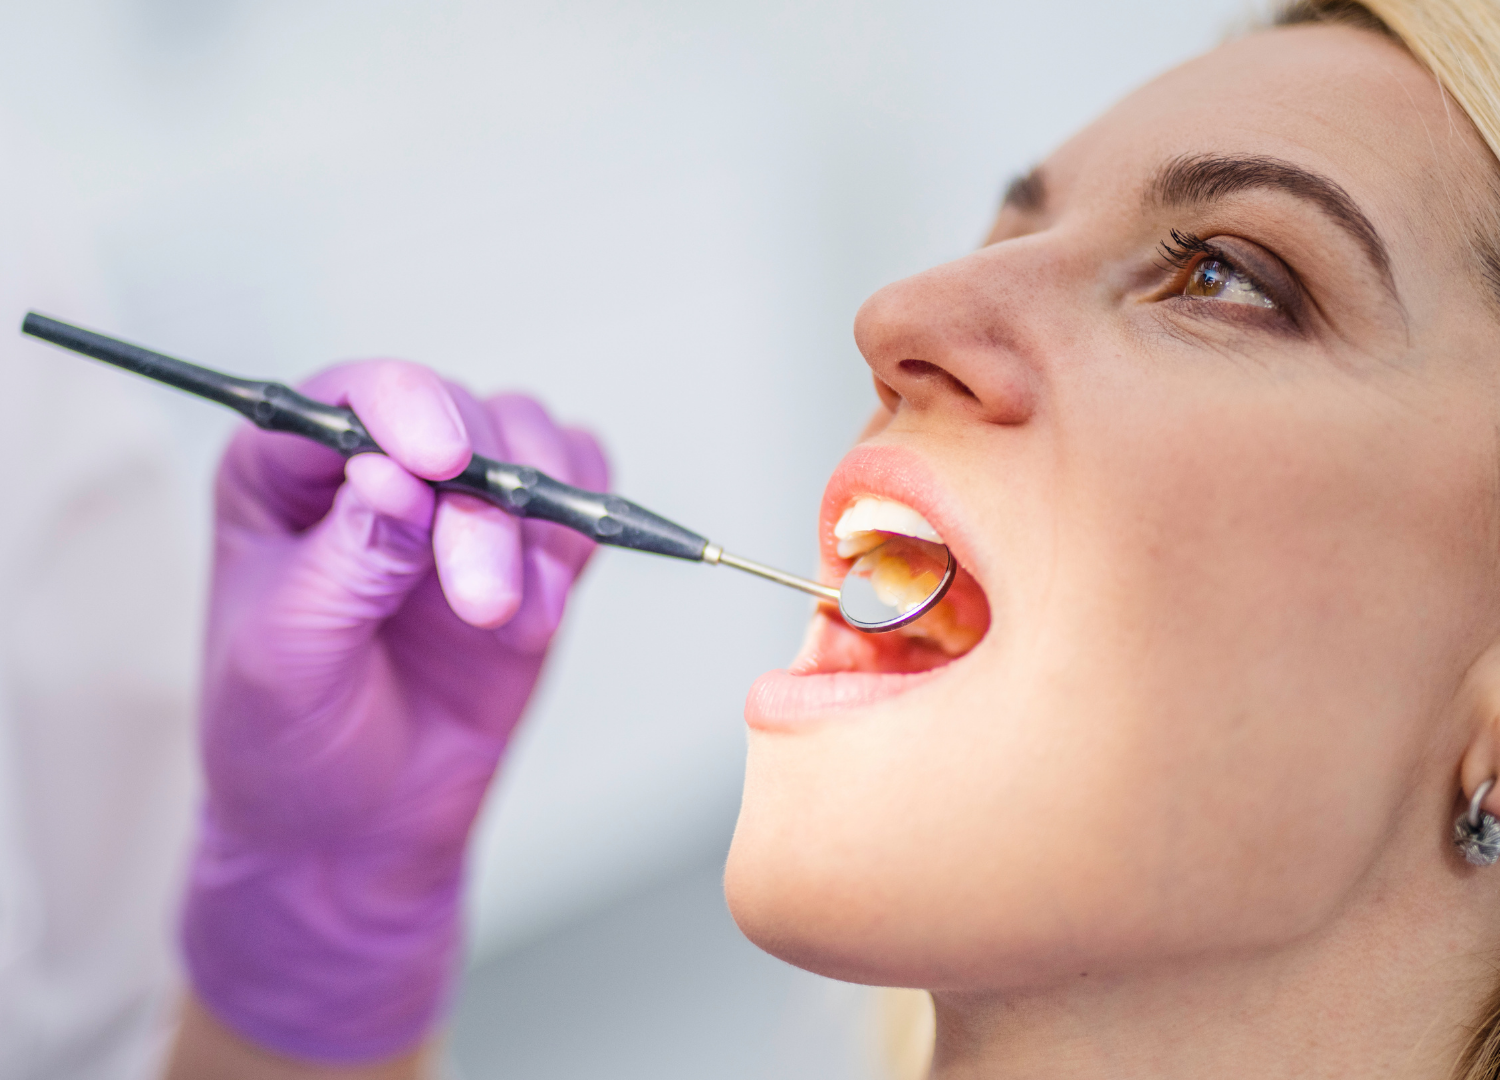 Extractions: When To Remove Teeth Or Not